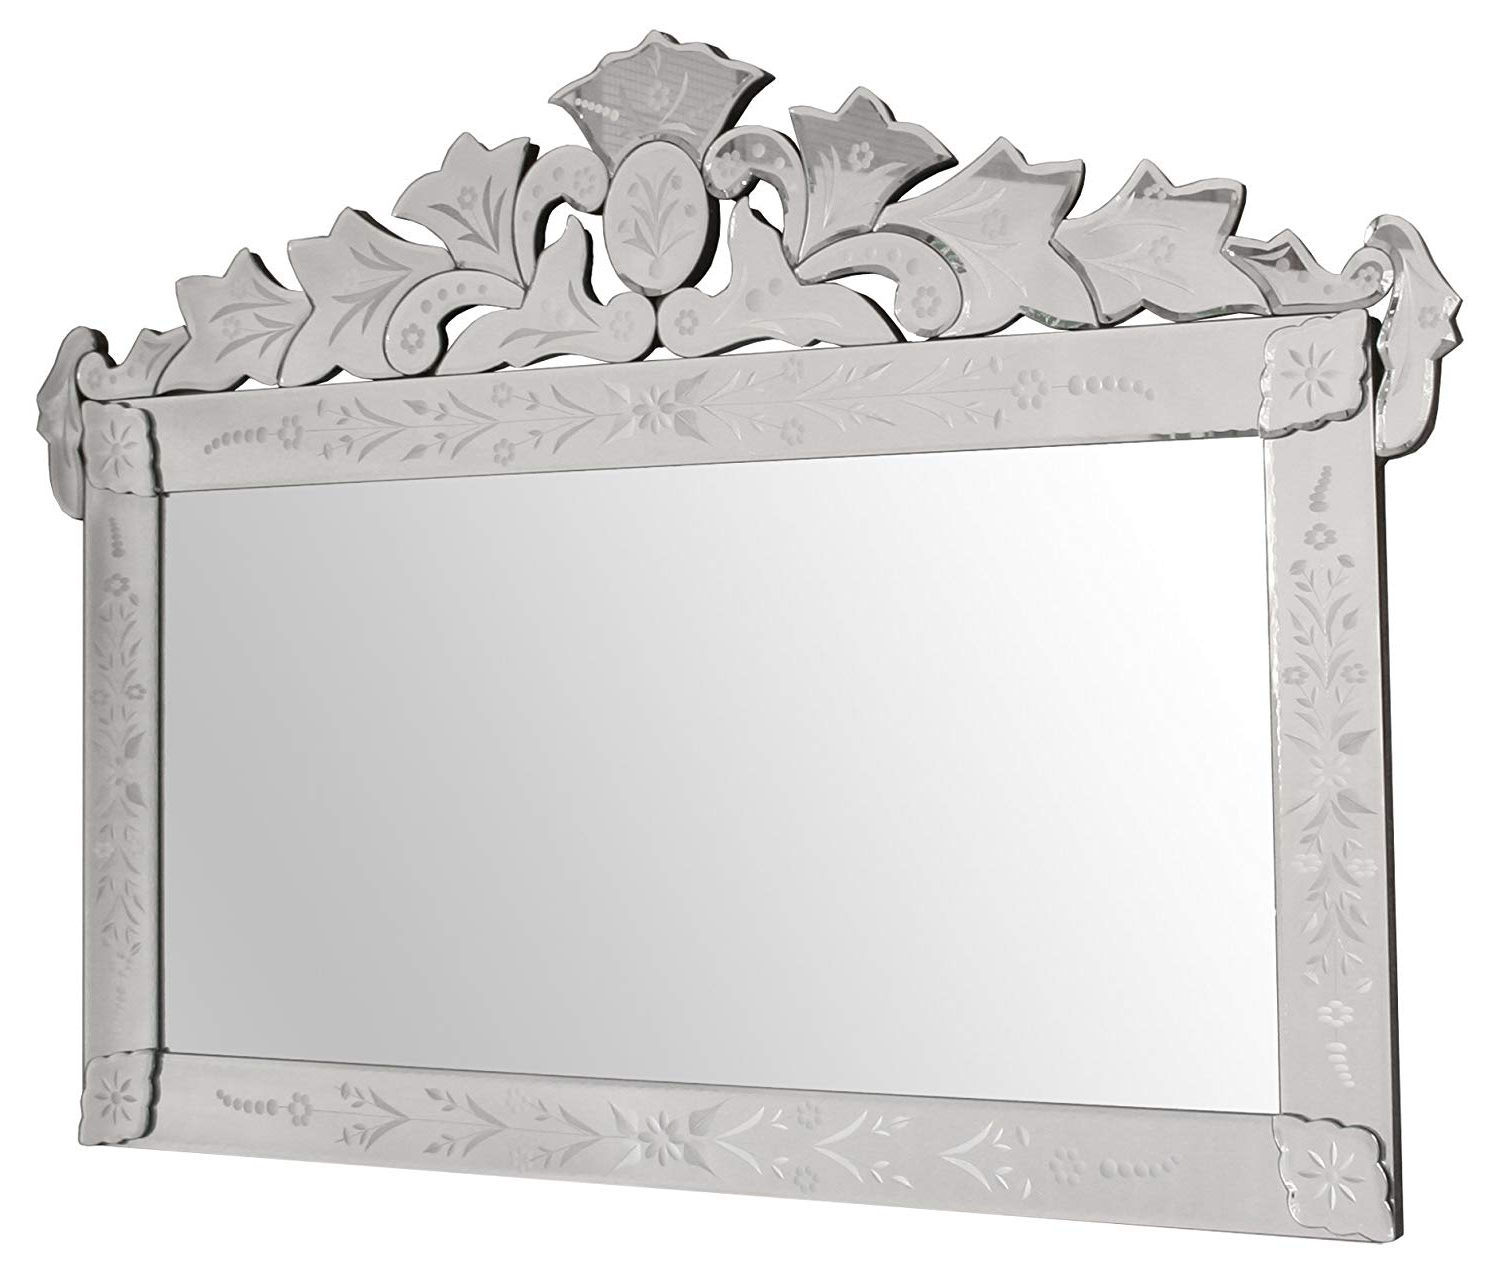 Landscape Wall Mirrors Throughout Well Known Febland Clear Venetian Landscape Wall Mirror, Mirrored (Gallery 16 of 20)